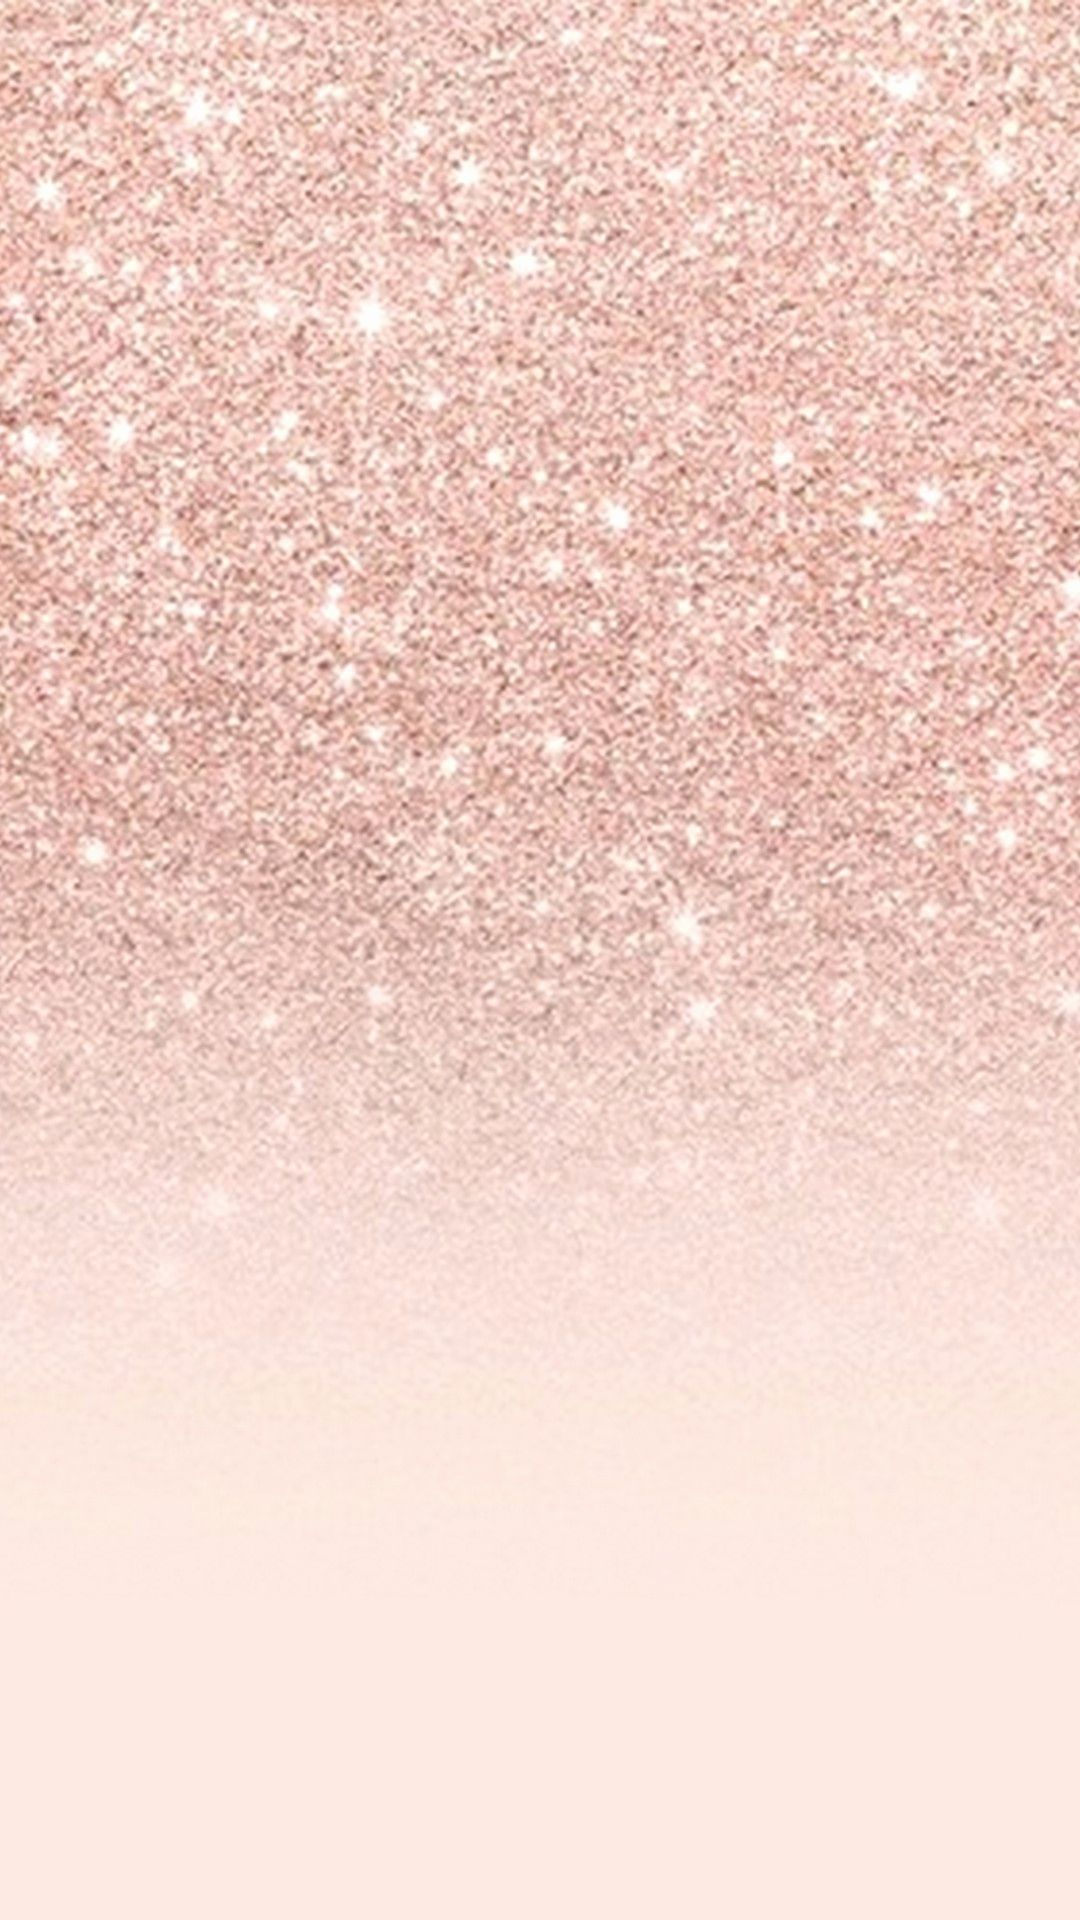 Grey And Rose Gold Wallpaper Home Screen In 2020 Rose Gold Wallpaper Gold Wallpaper Background Gold Ombre Wallpaper